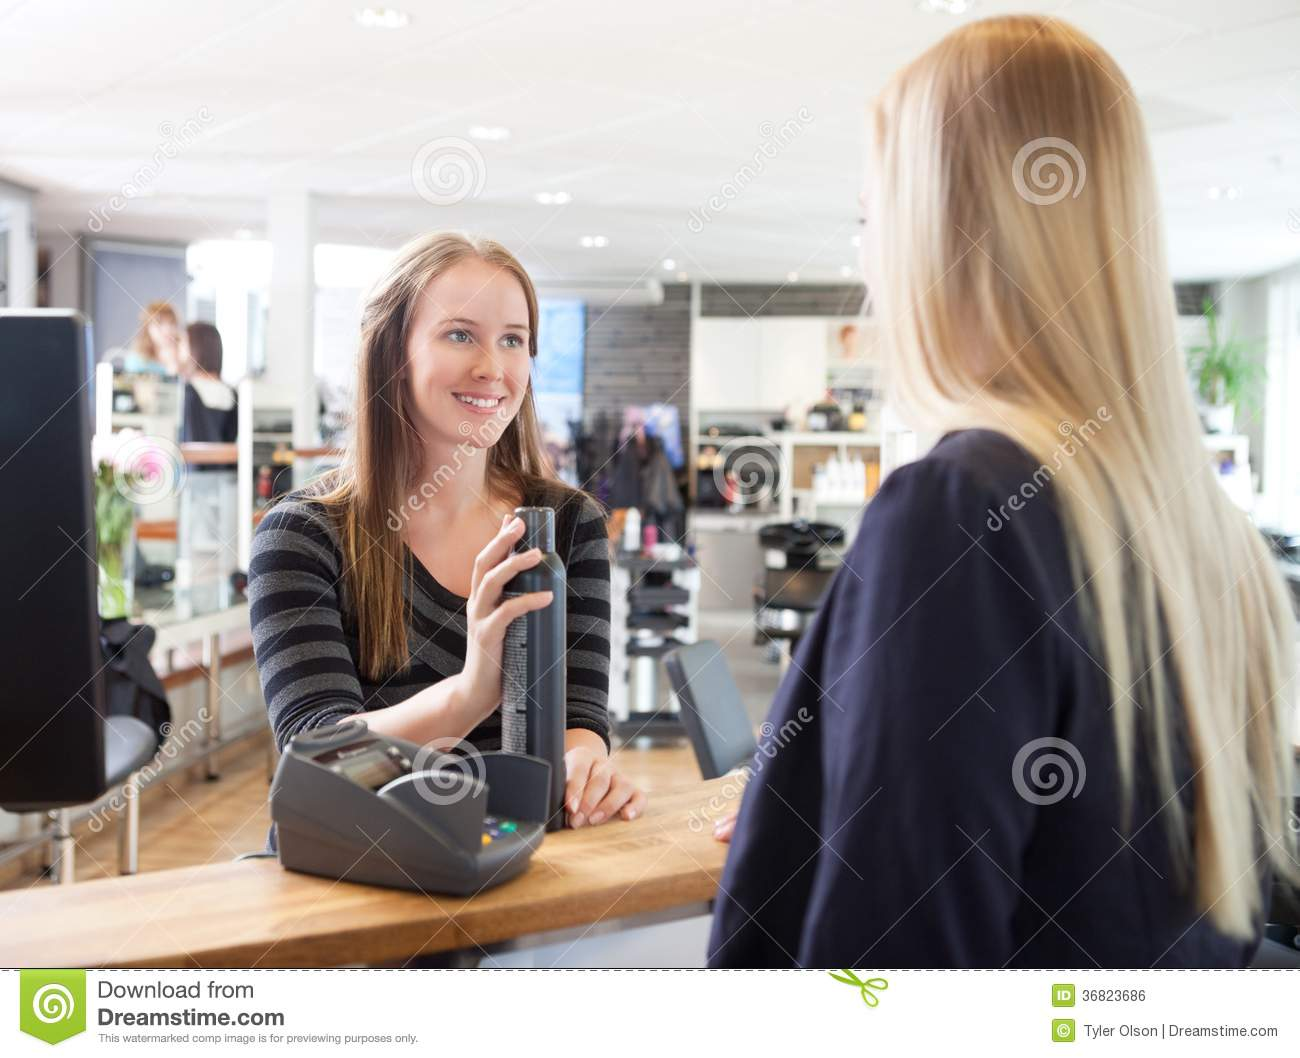 Receptionist And Client In Beauty Salon Royalty Free Stock Image  Image 36823686